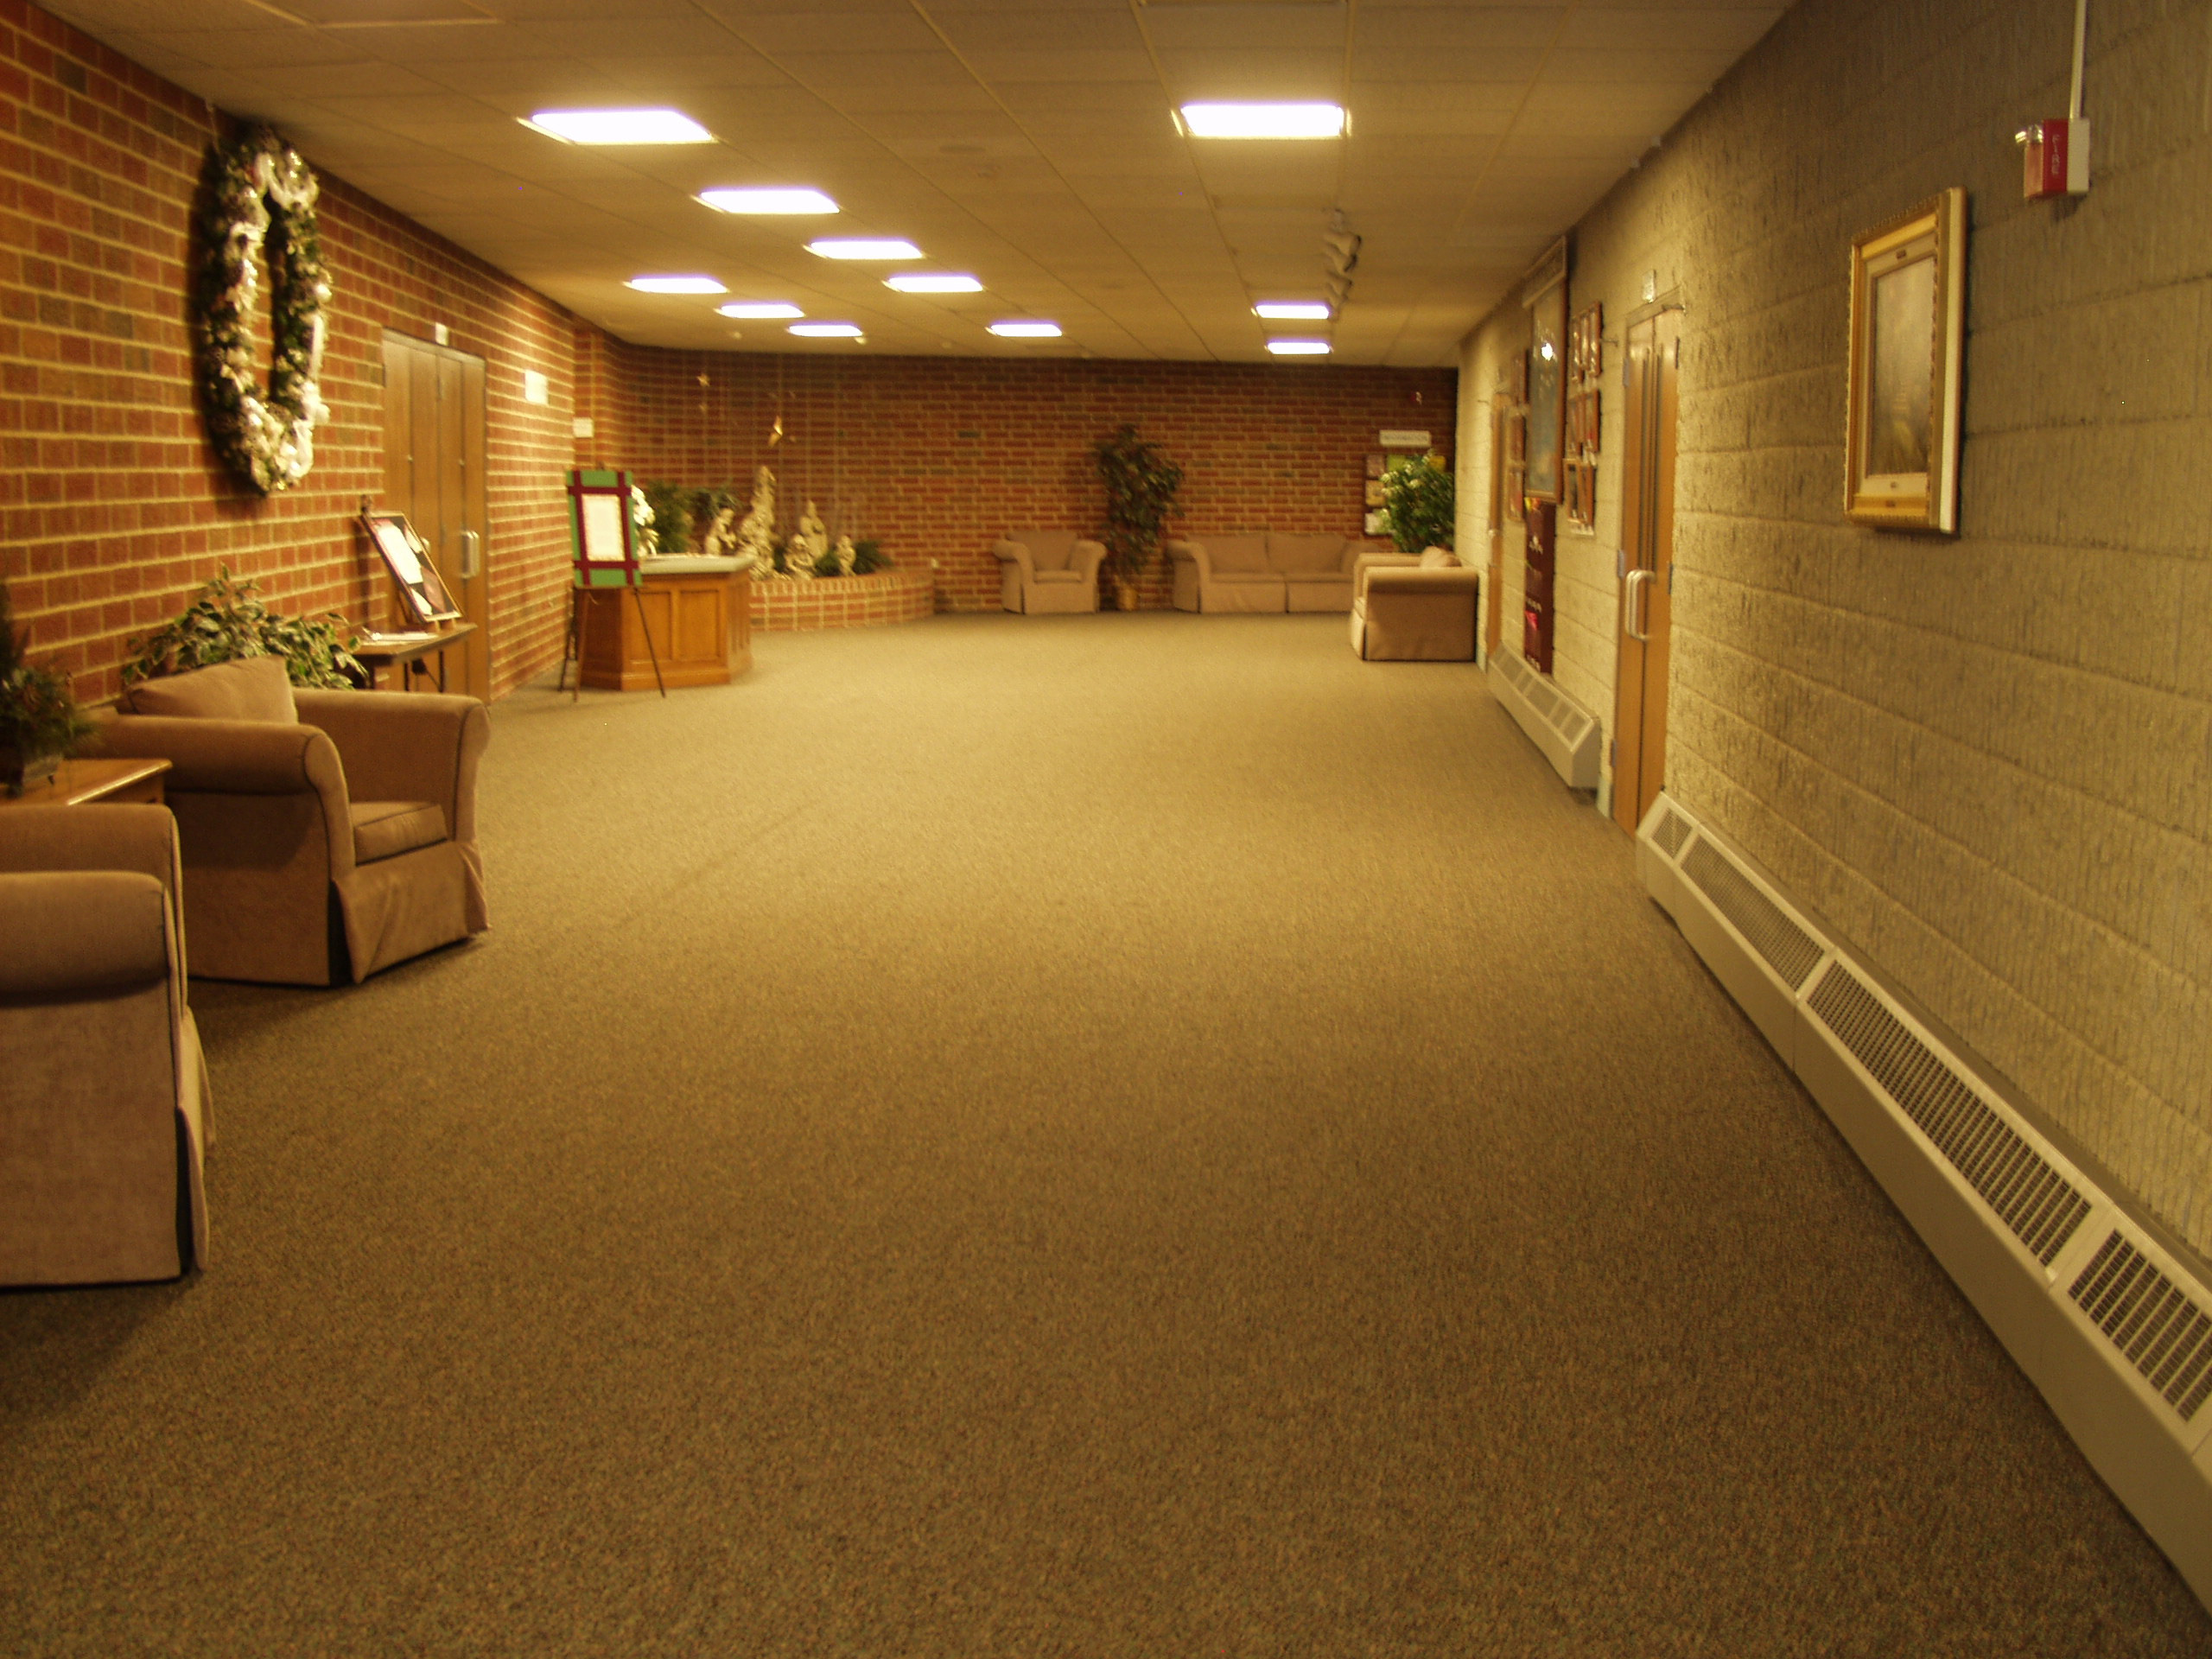 Commercial Flooring Installtions - United Coverings, Inc.